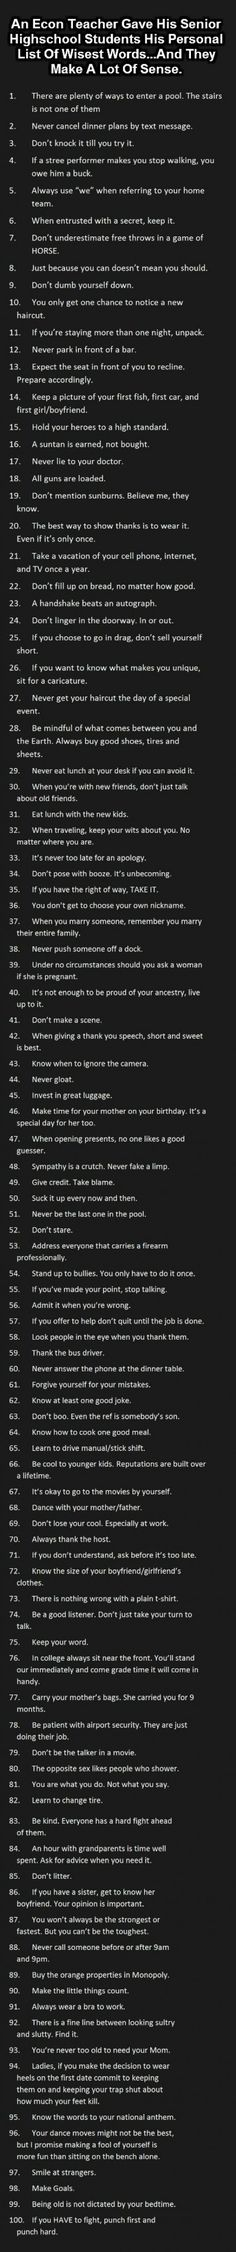 100 Tips from a Smart Econ Teacher to his Students.  I ought to hang this on the fridge and see it everyday. Best Quotes, Life Quotes, Favorite Quotes, Quotes To Live By, Good Advice, Life Advice, Cool Words, Wise Words, Motivational Quotes